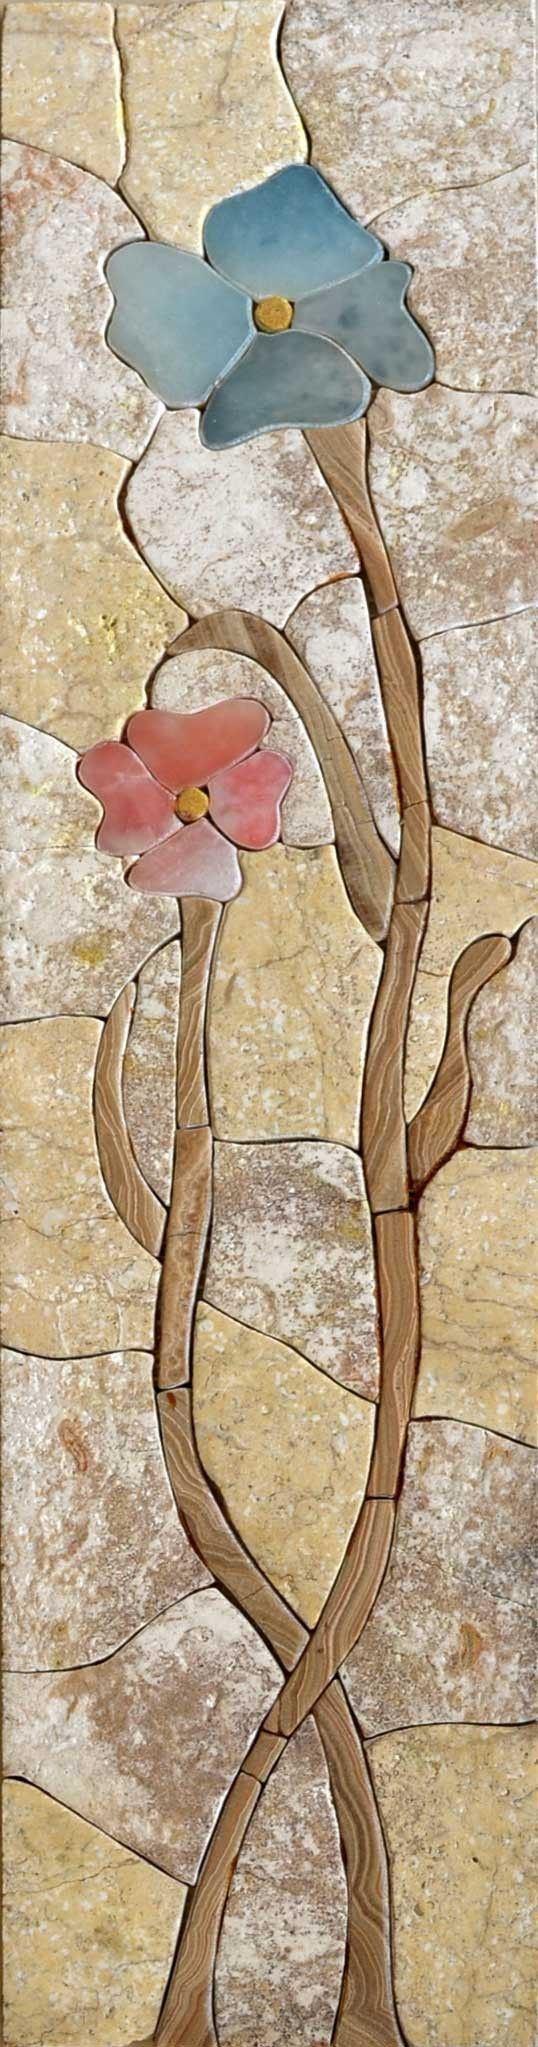 expensive jewelry stores Stone Mosaic That Shows Two Flowers Tangled That Look Very Nice It Gives A Fresh Look And Is Ideal For Decoration  Get it now for